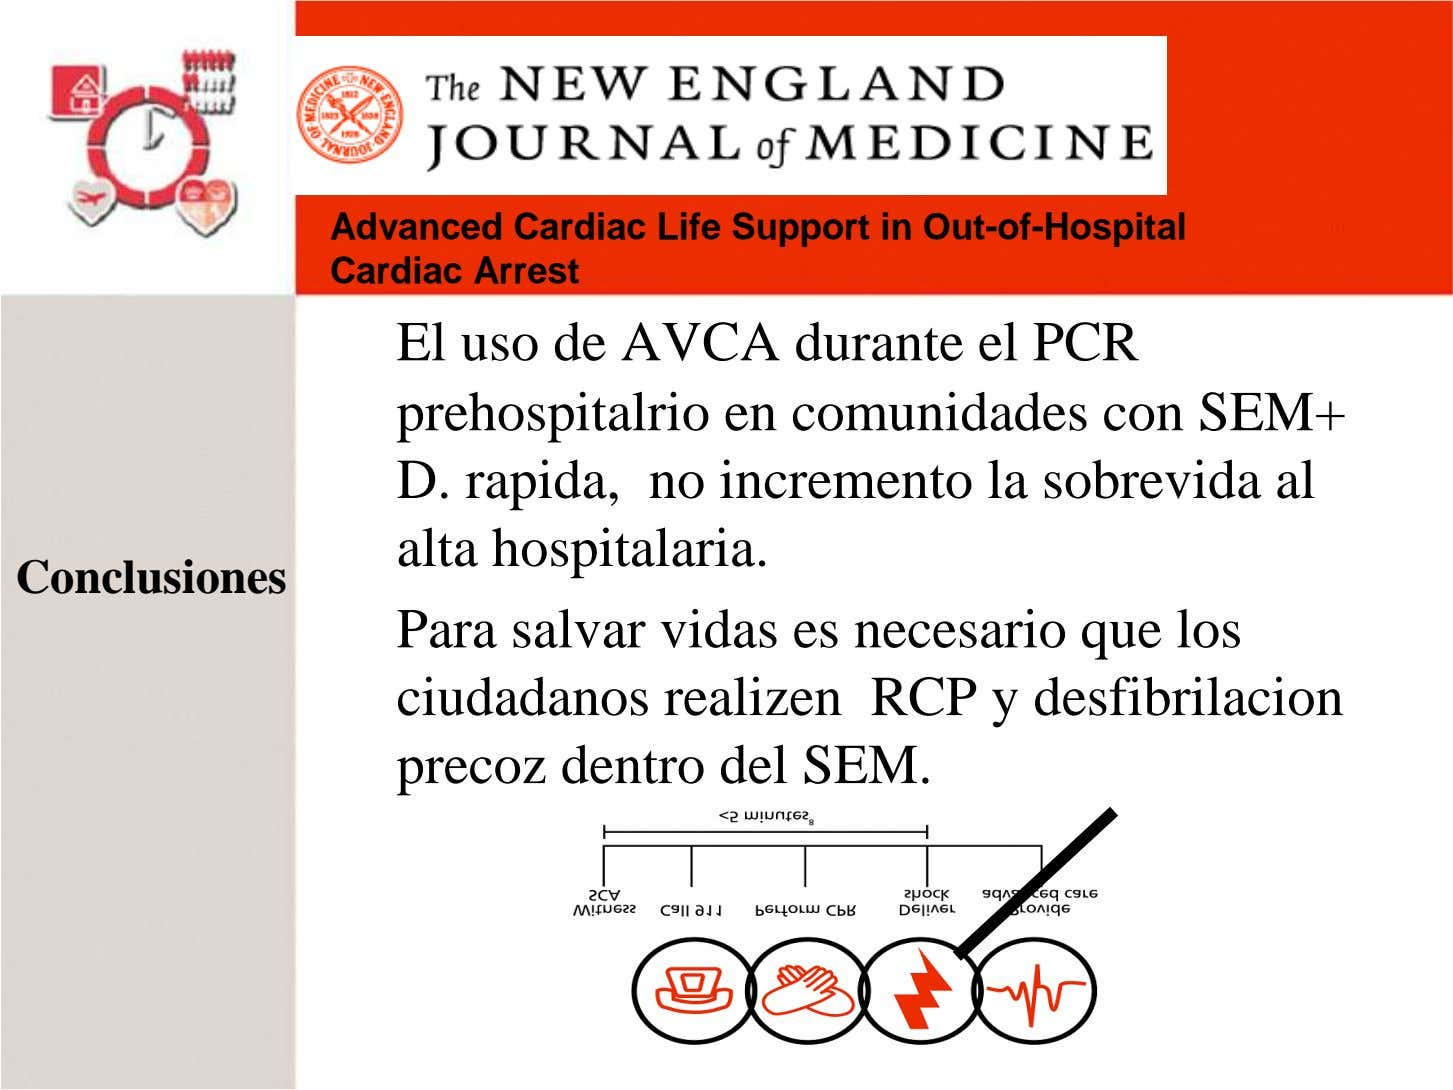 Advanced Cardiac Life Support in Out-of-Hospital Cardiac Arrest Conclusiones El uso de AVCA durante el